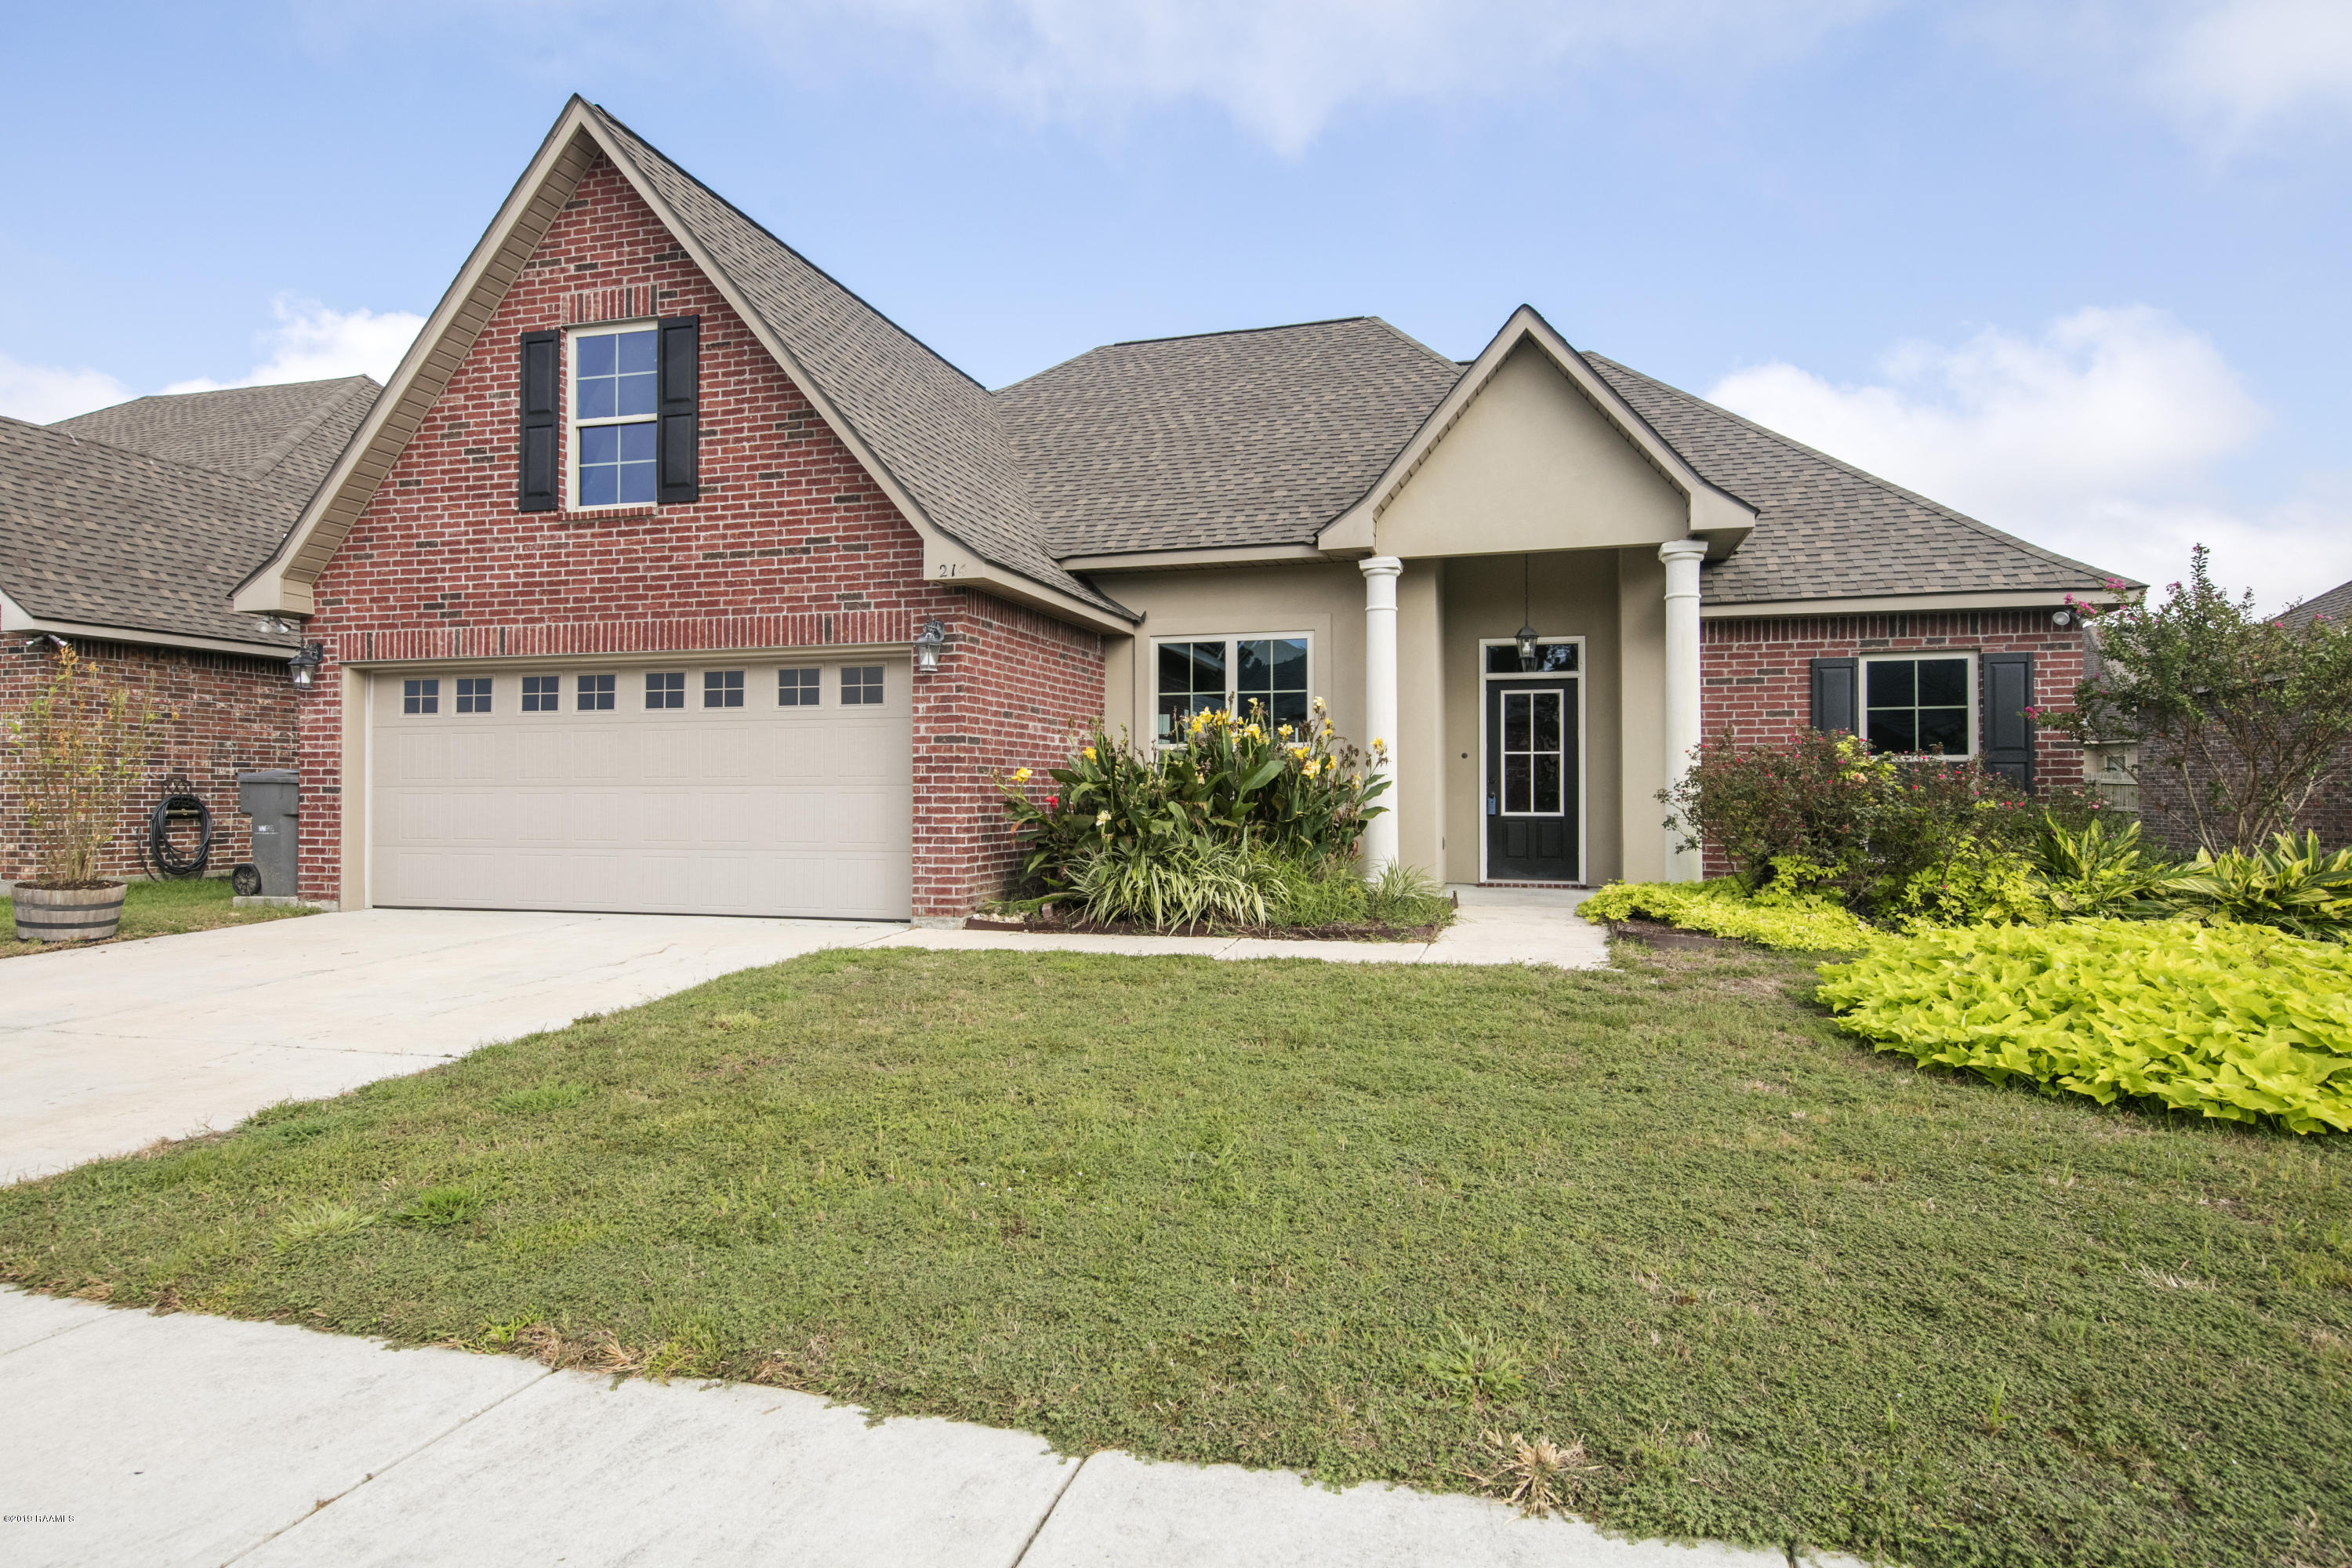 214 Woodhaven Road, Youngsville, LA 70592 Photo #1